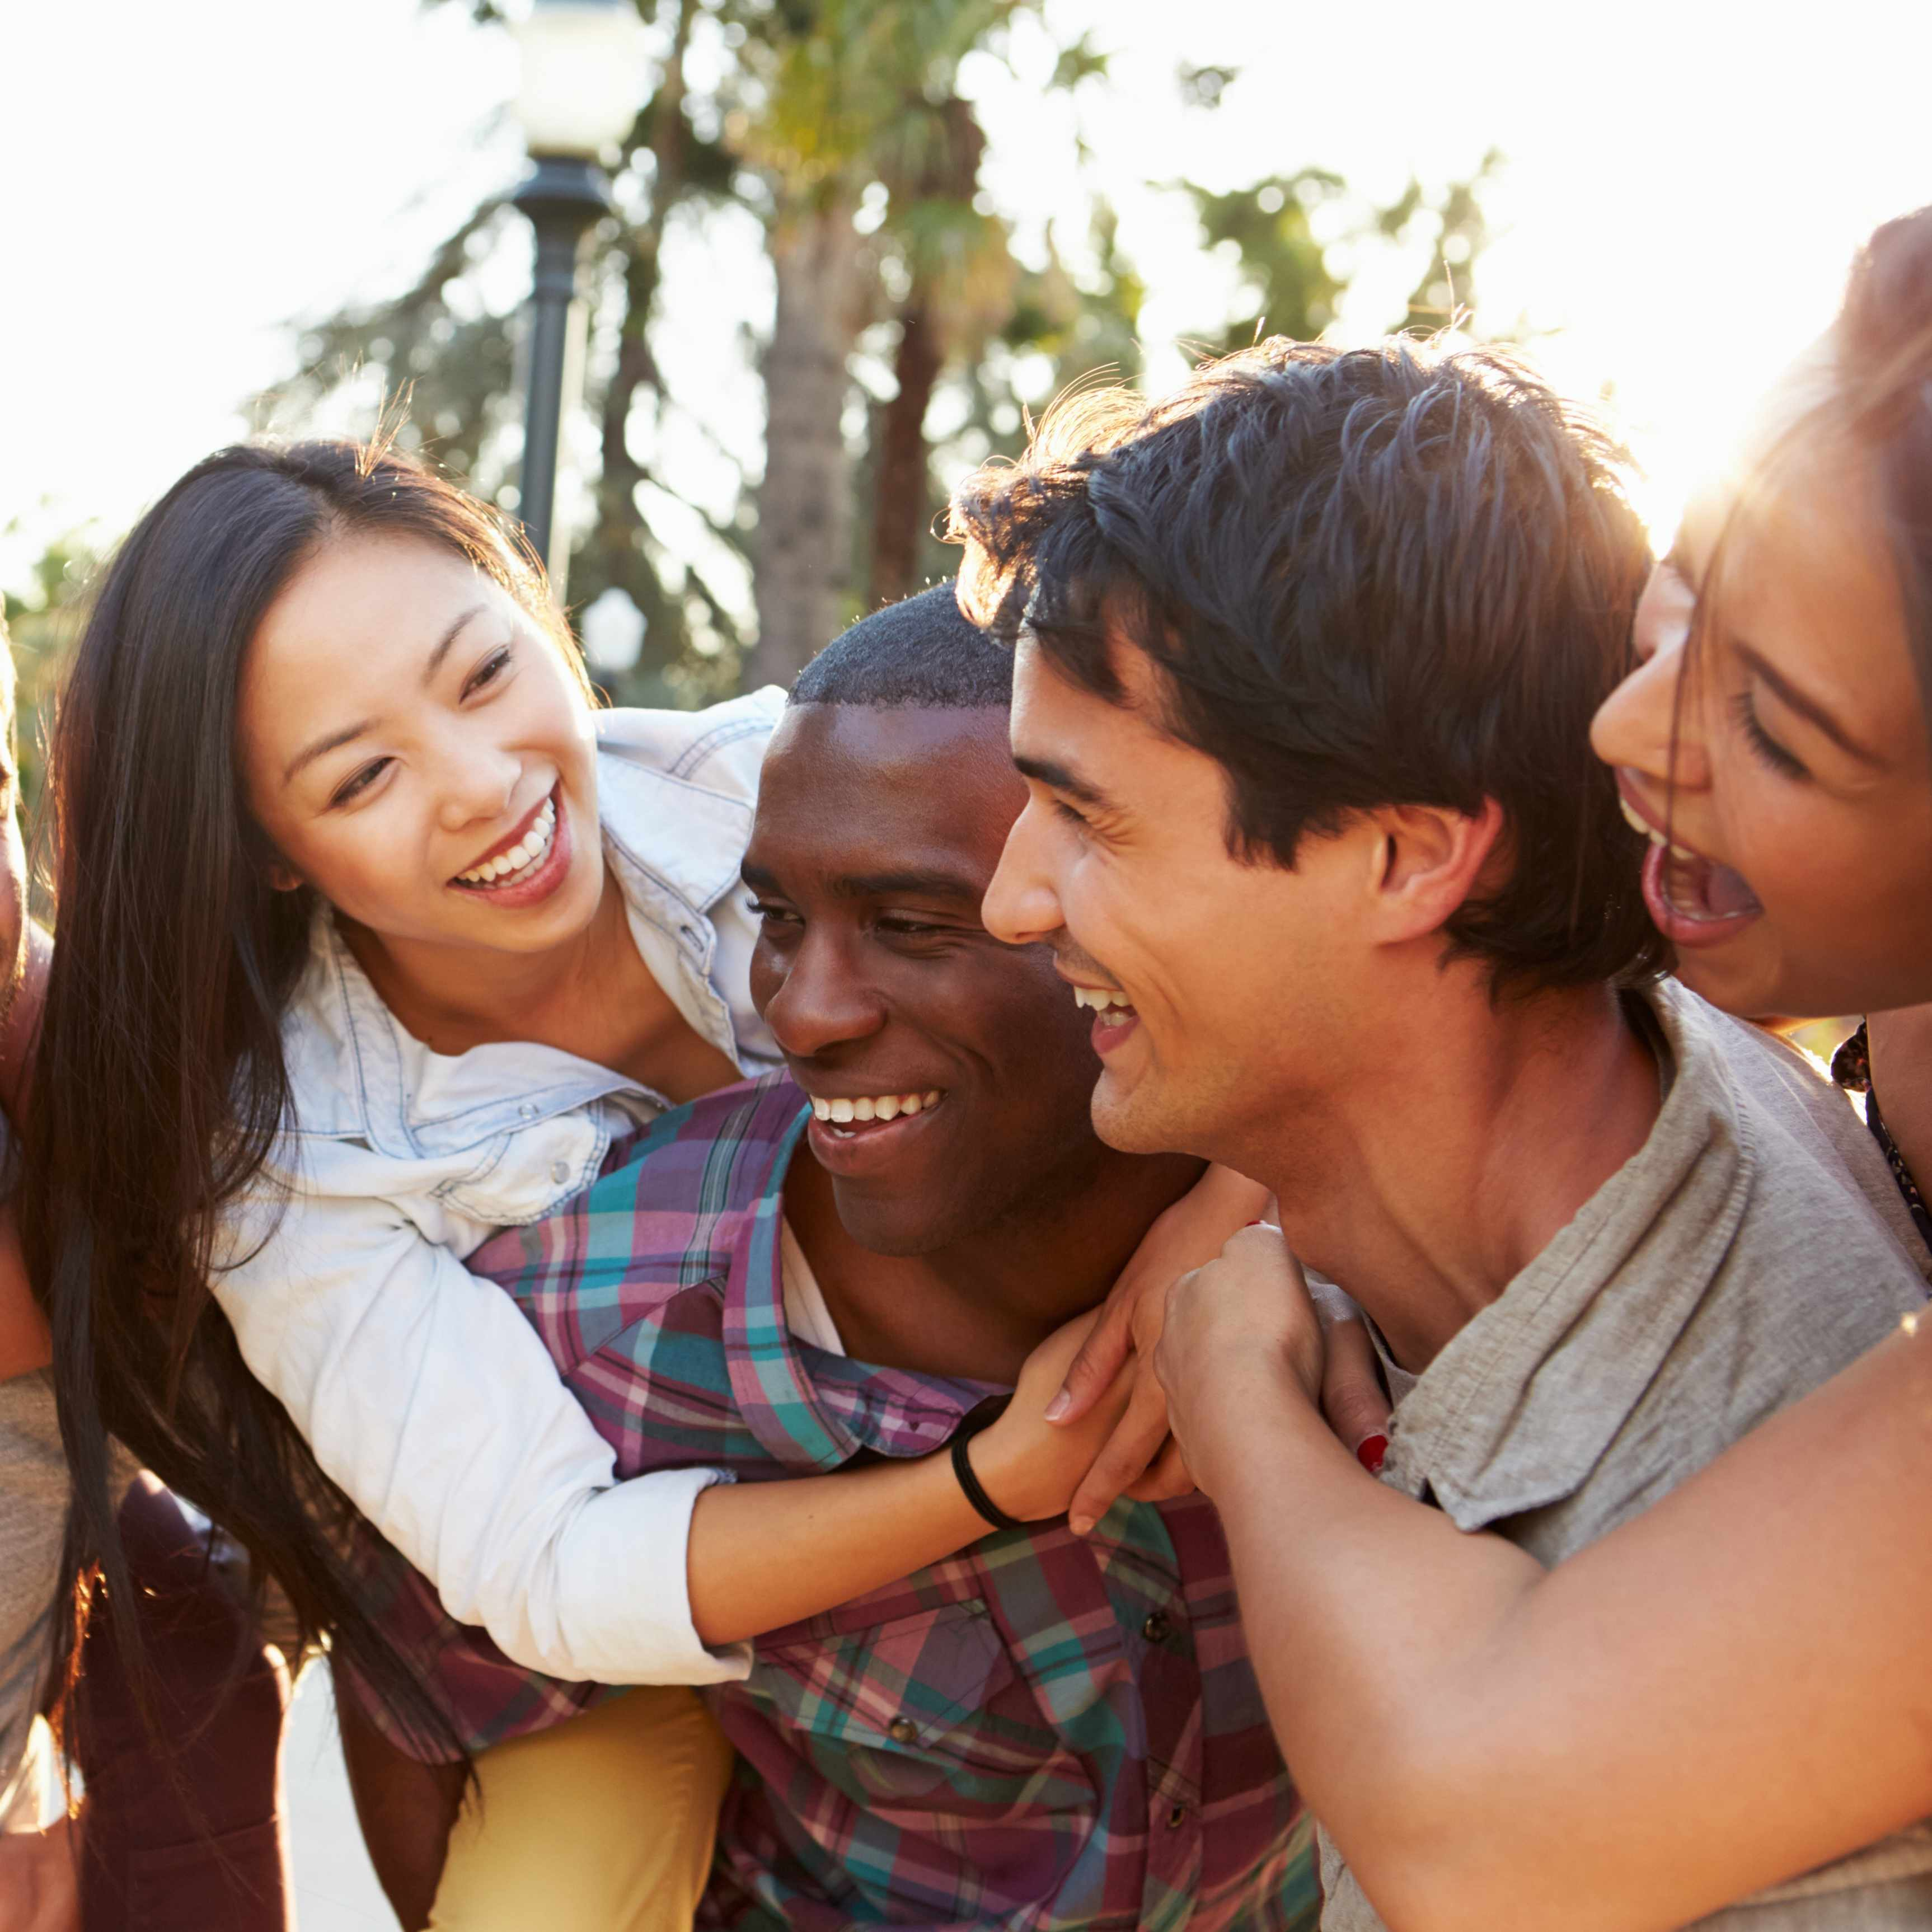 a diverse group of young people hugging and laughing, having fun